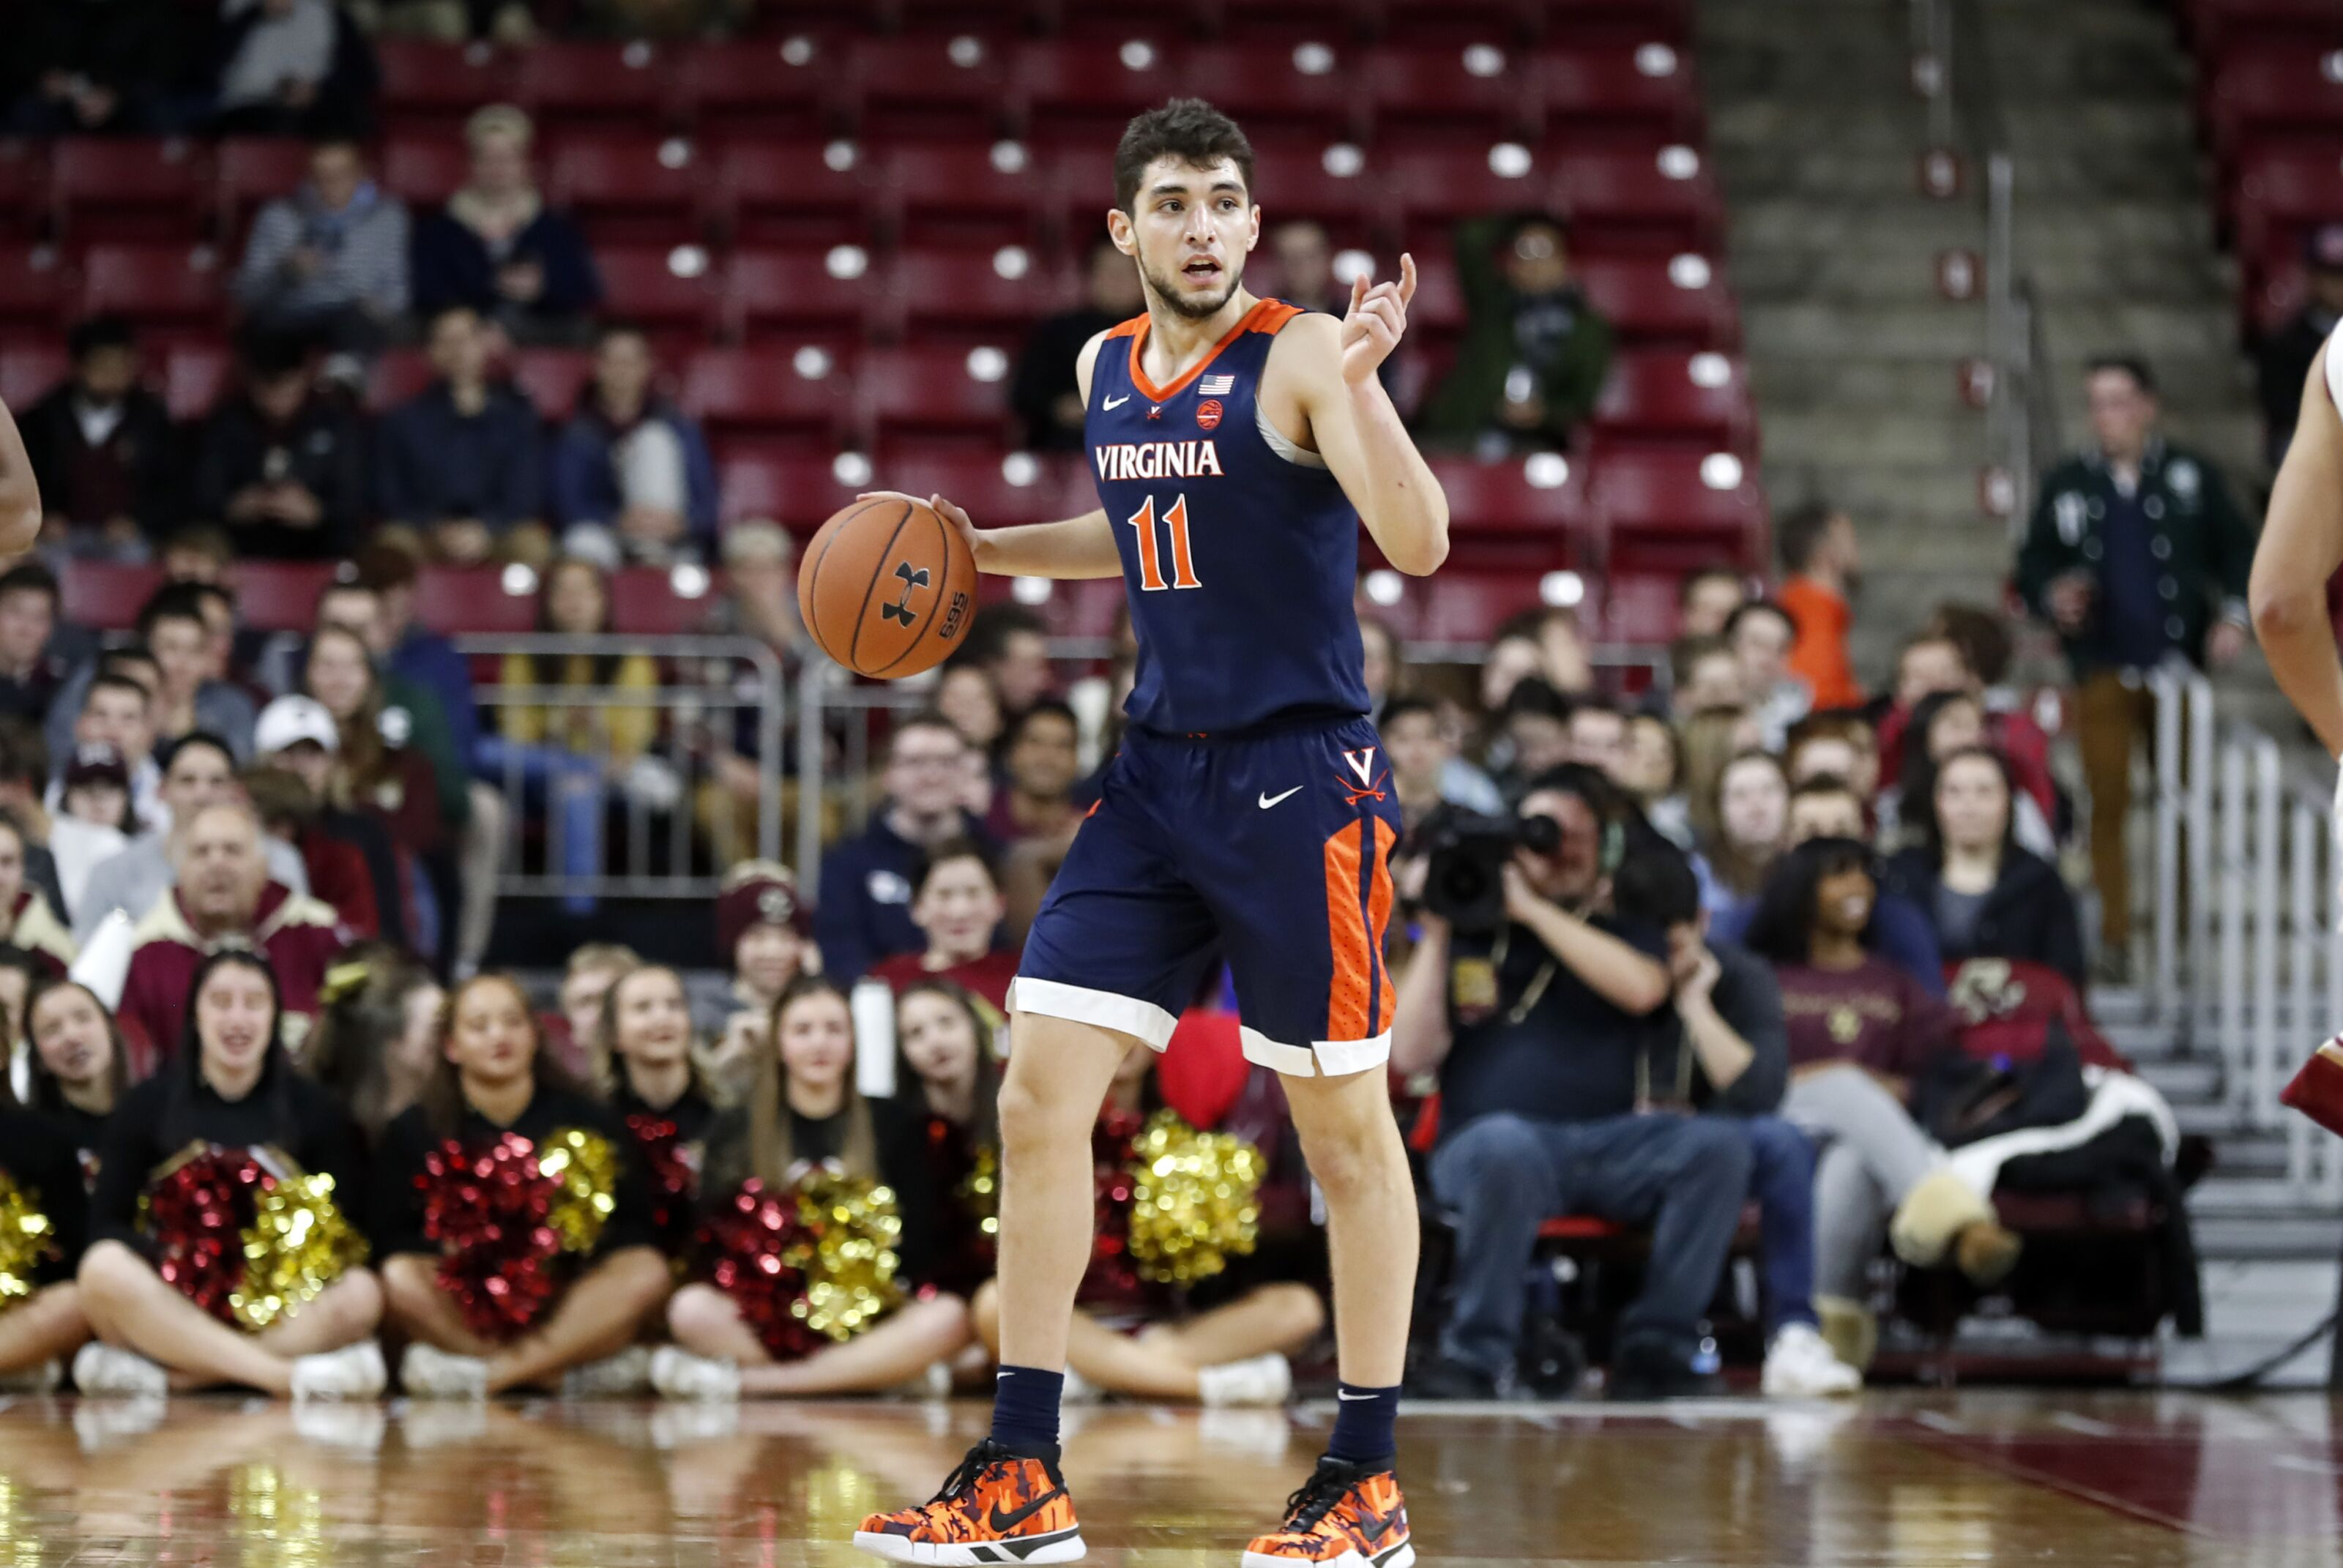 Virginia Vs Virginia Tech Live Stream Watch College Basketball Online